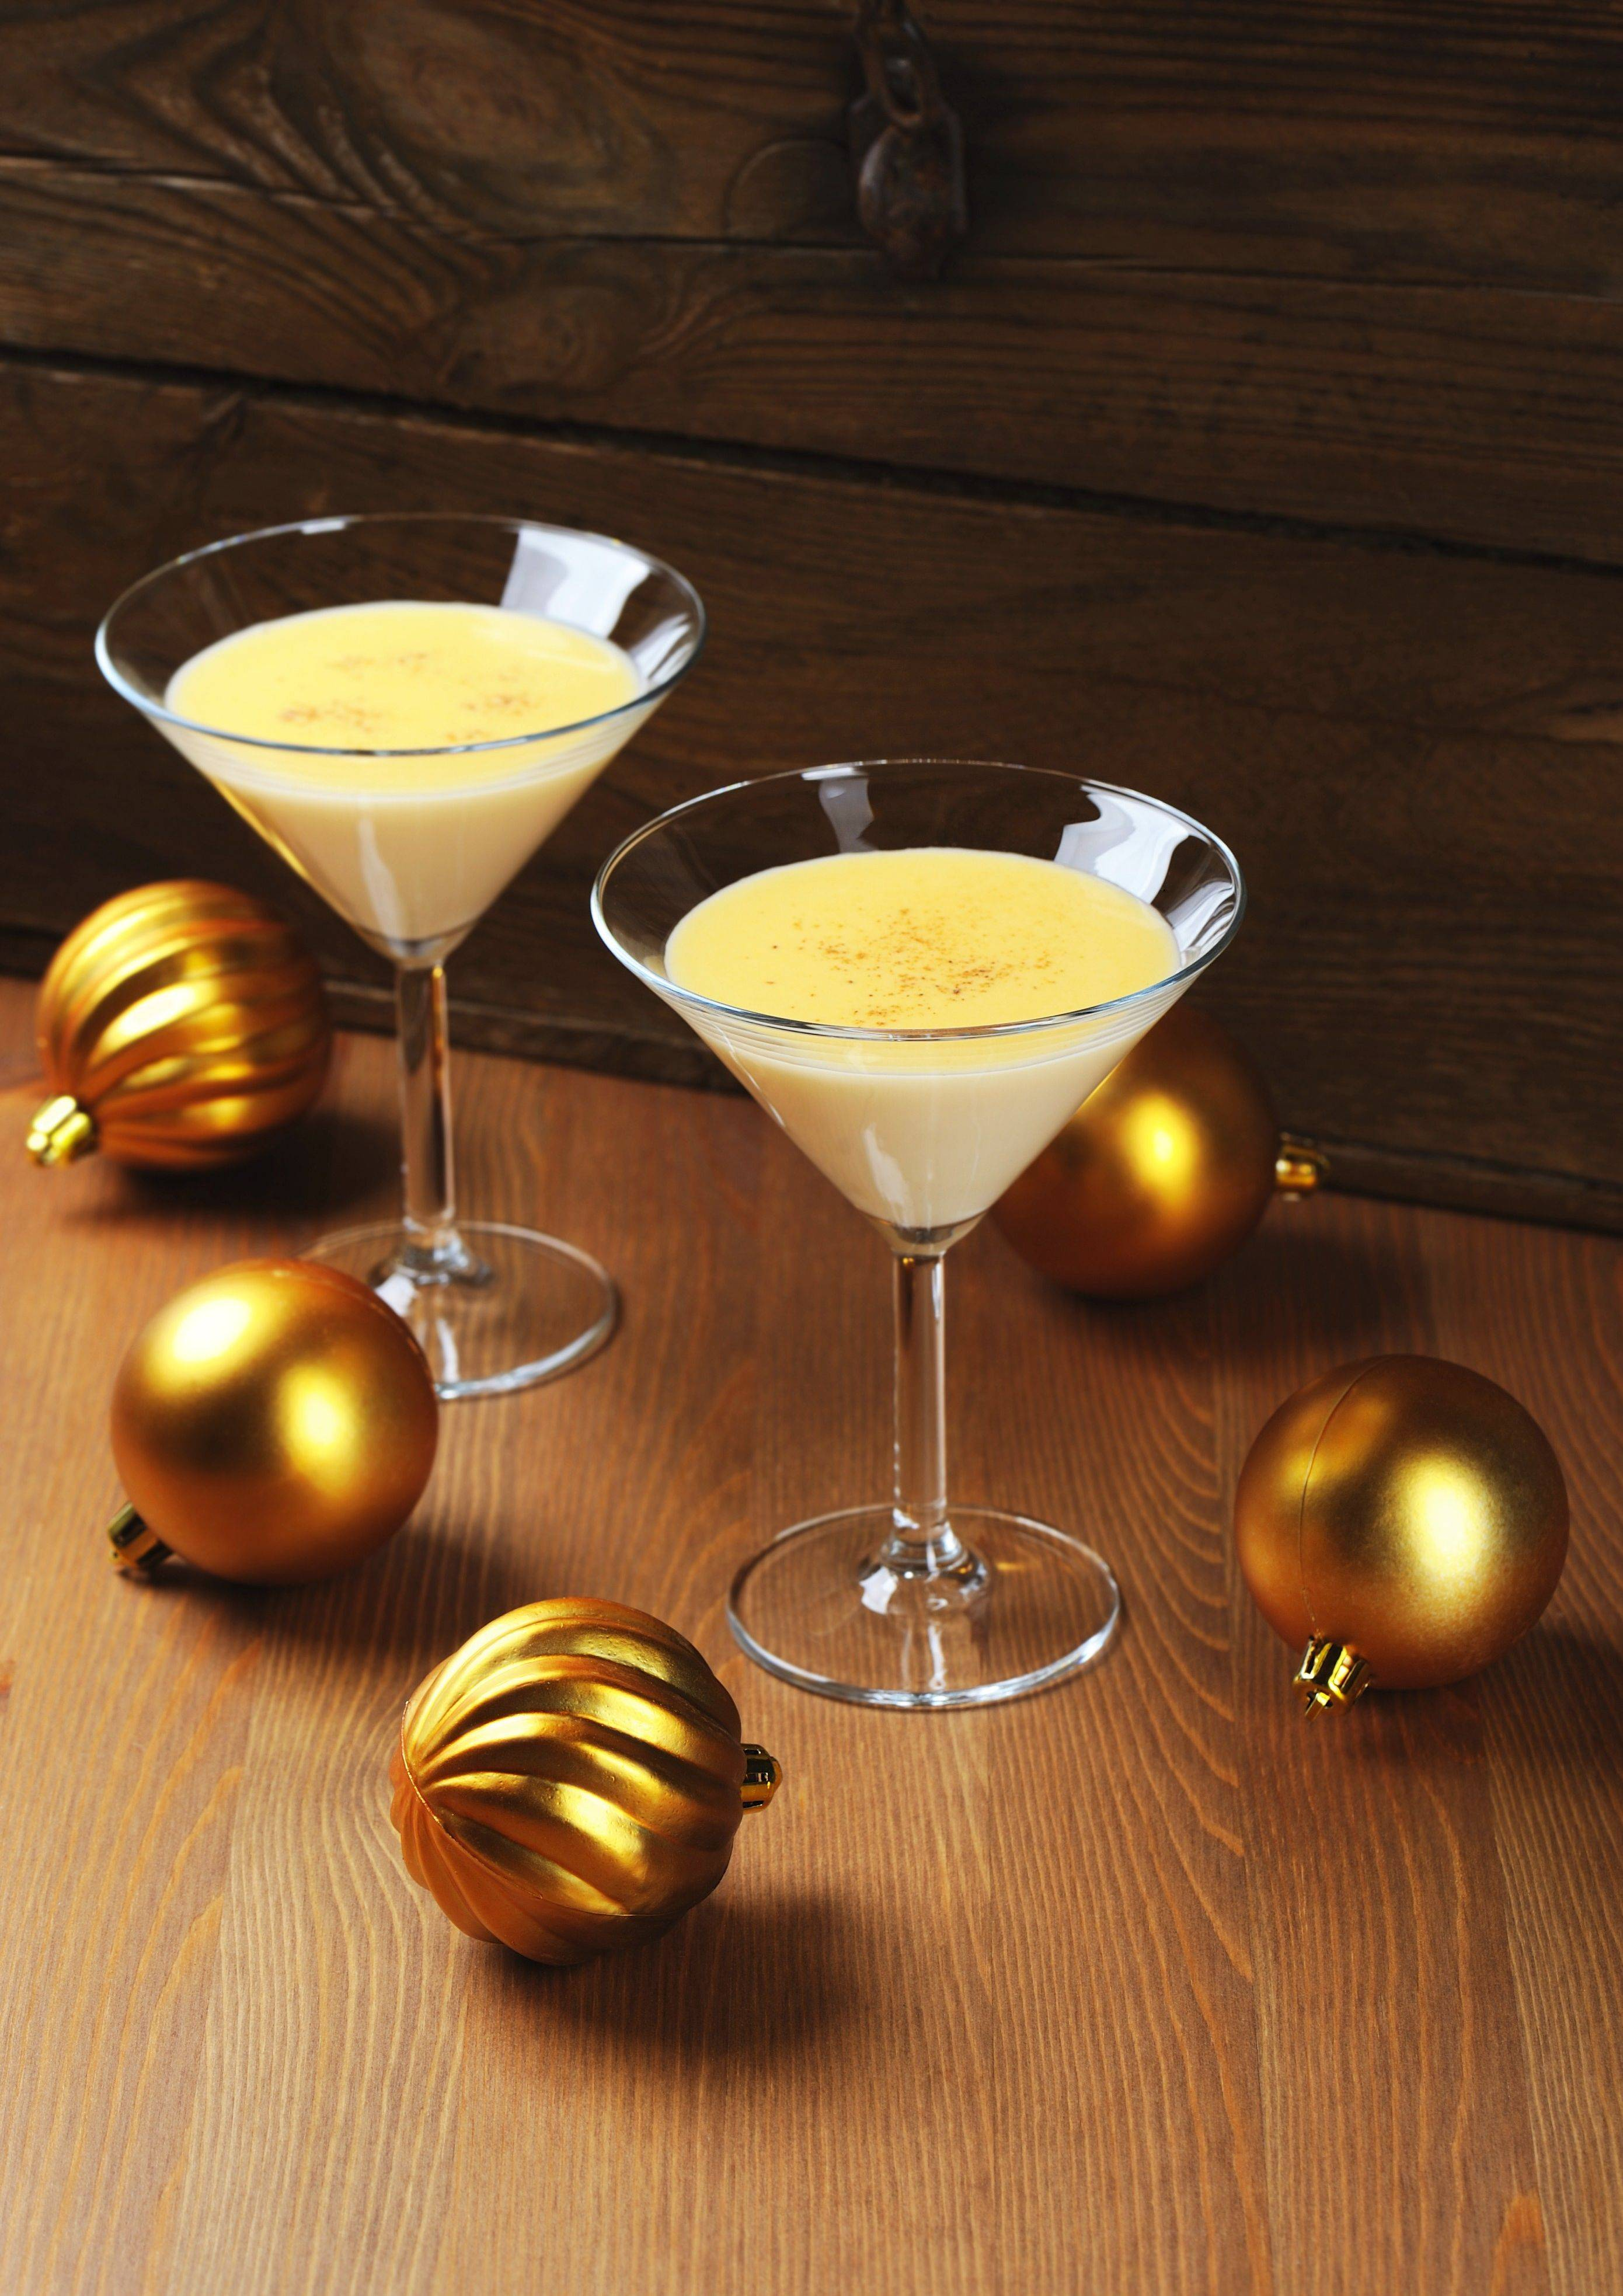 Eggnog is a popular dairy-based cocktail. Try making it by the glass instead of by the pitcher.